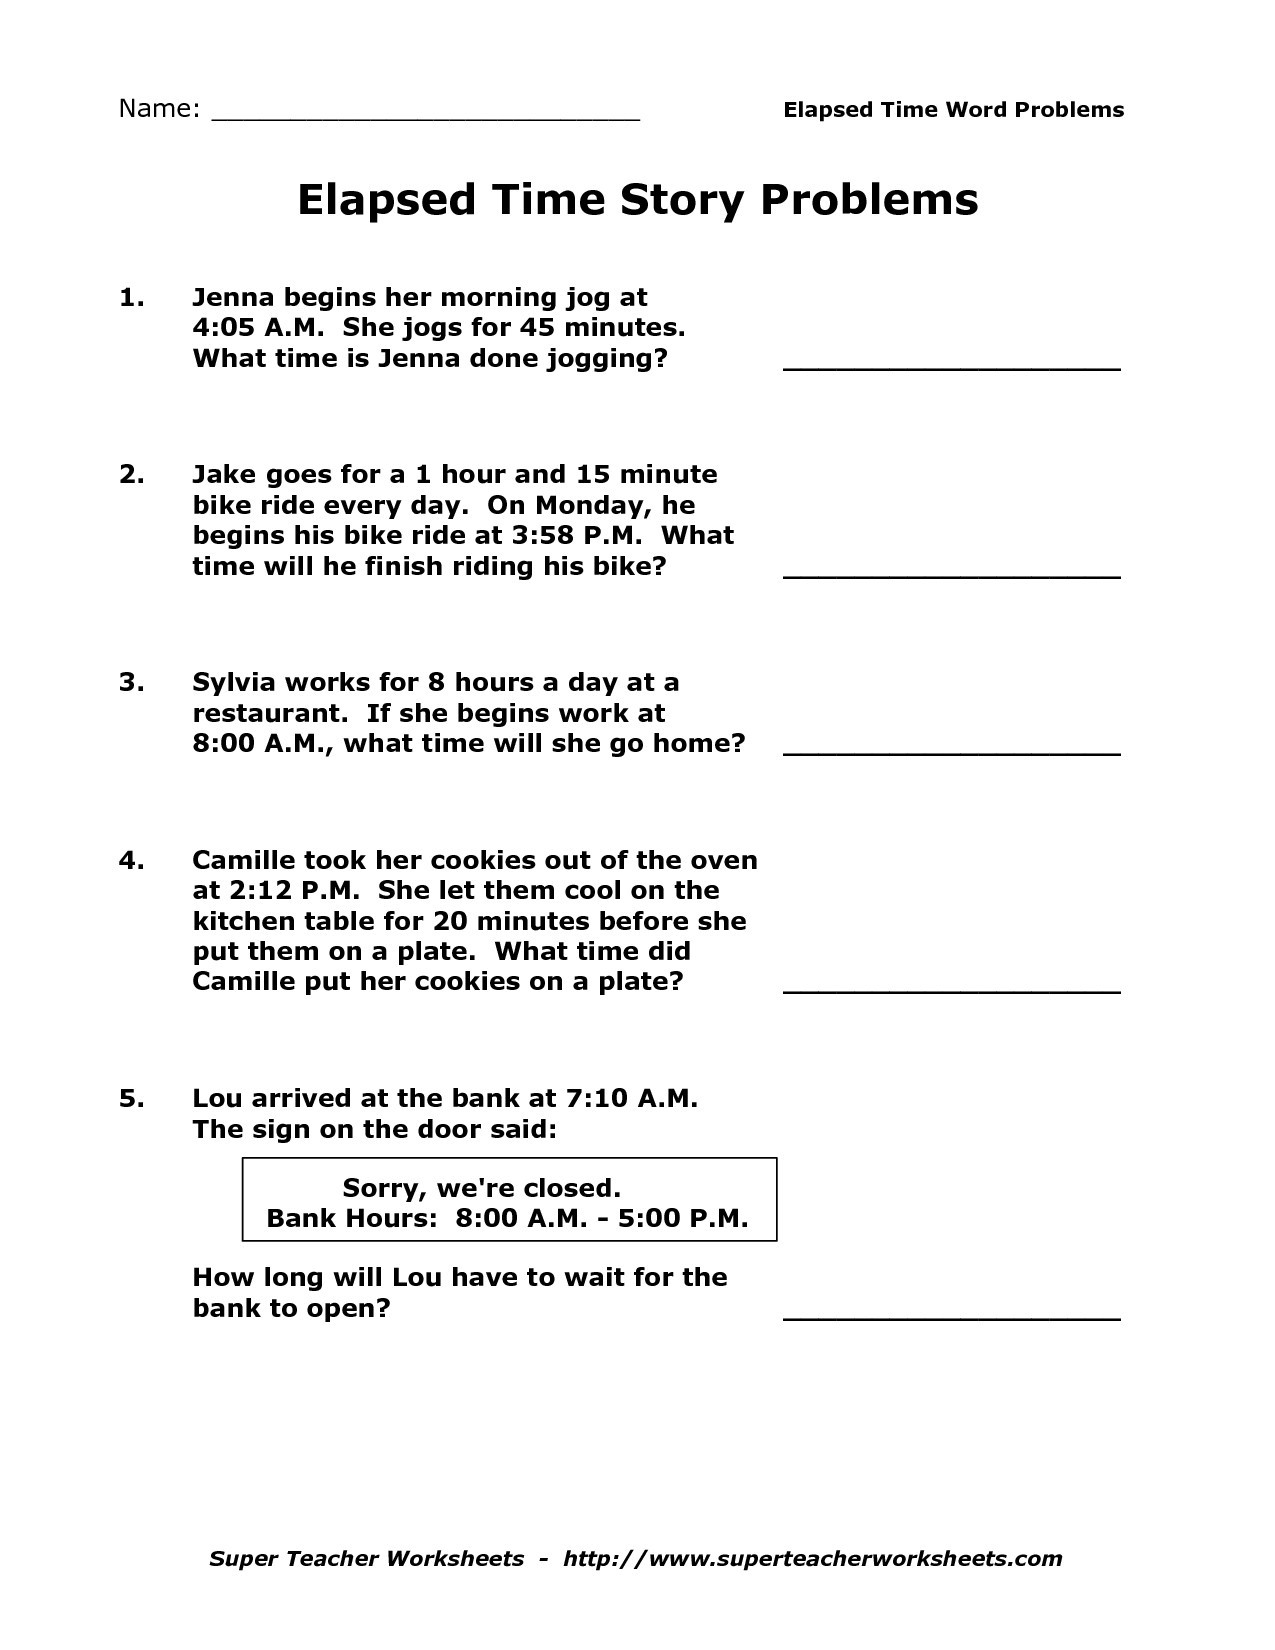 Elapsed Time Worksheets 3Rd Grade To Learning - Math Worksheet For Kids - Elapsed Time Worksheets Free Printable